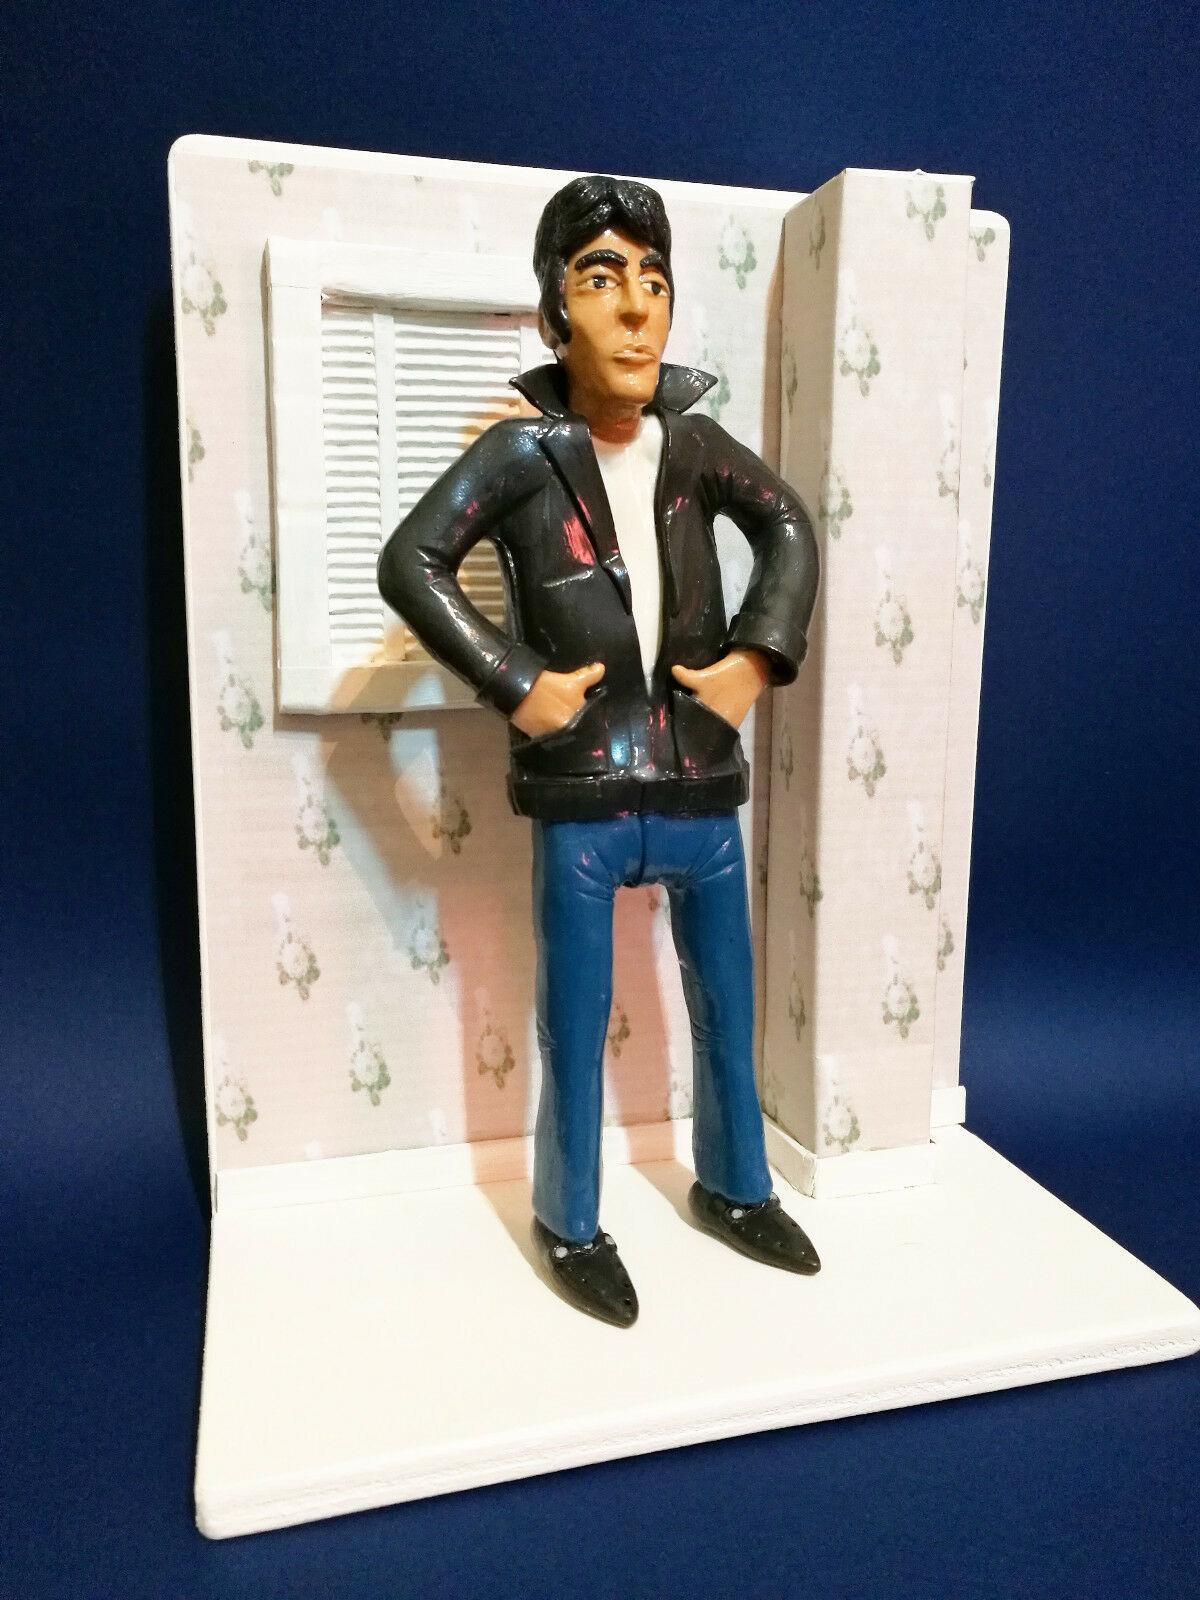 Statuina Statuina Statuina - Action Figures Bruce Springsteen album  Darkness on the Edge of Town  6eb9f6